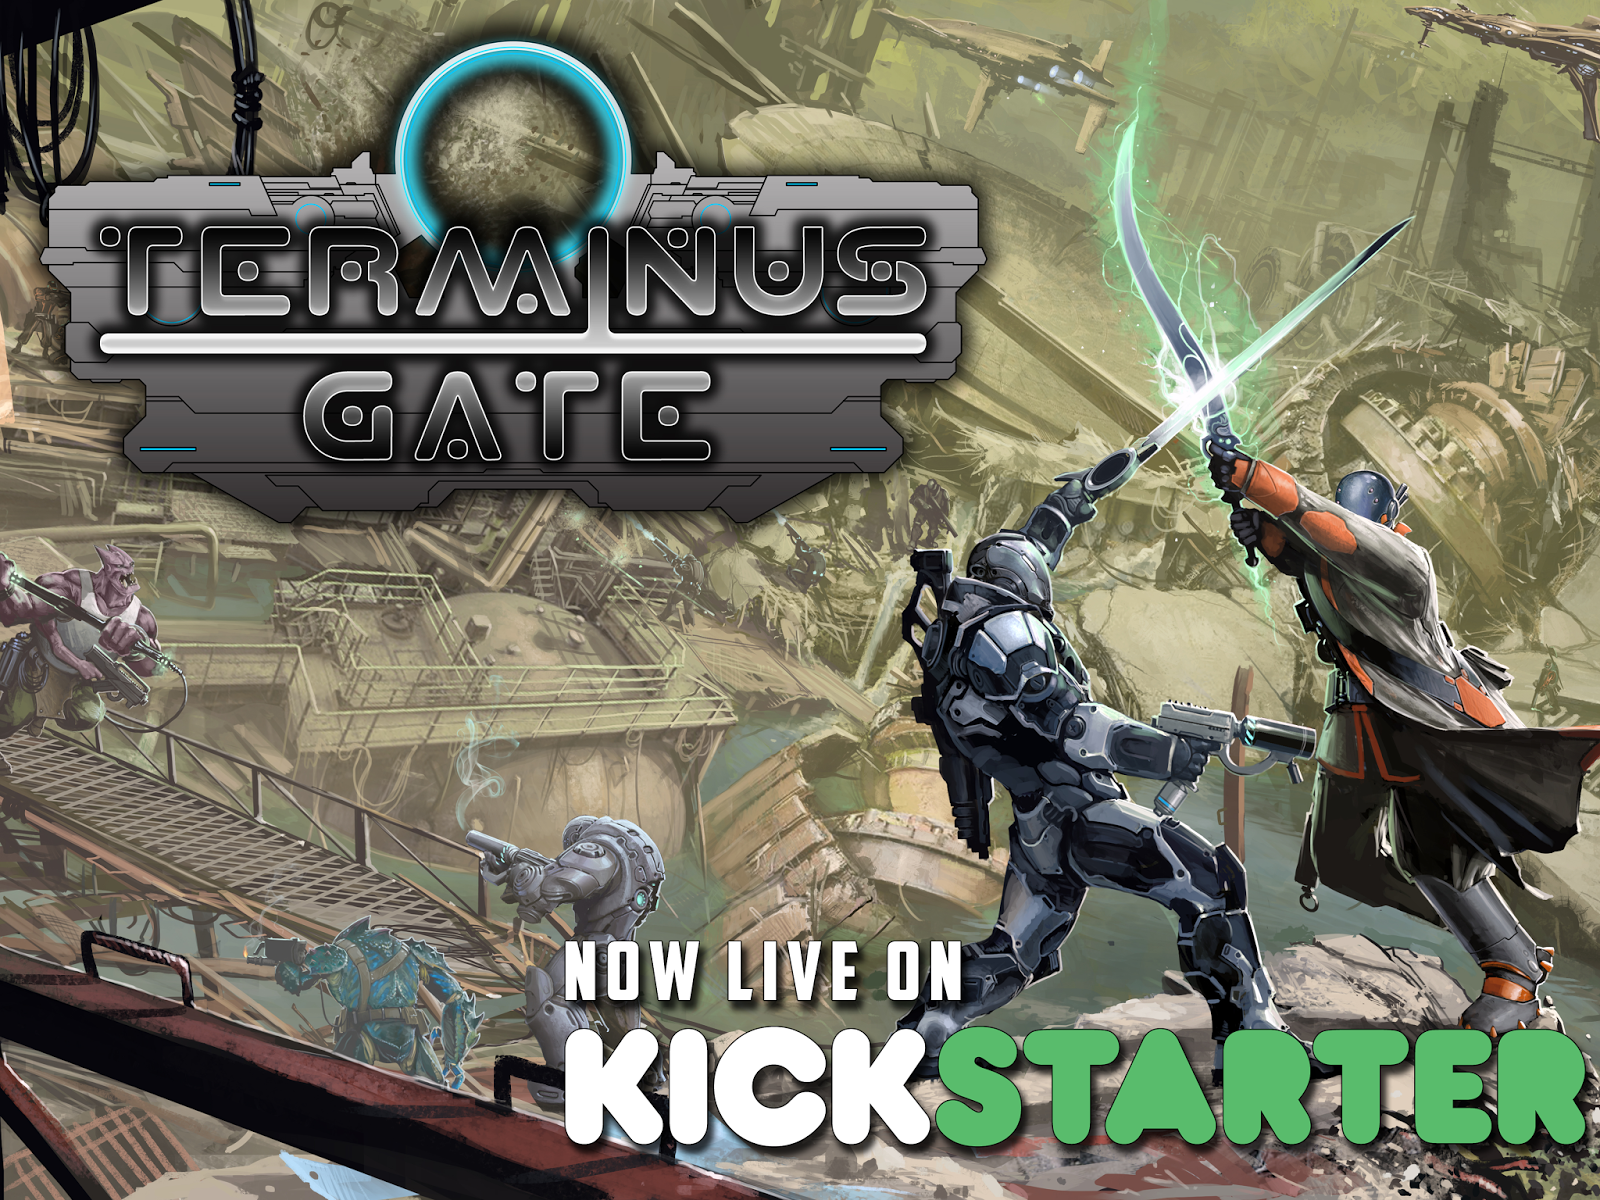 Click here to jump to Kickstarter now!